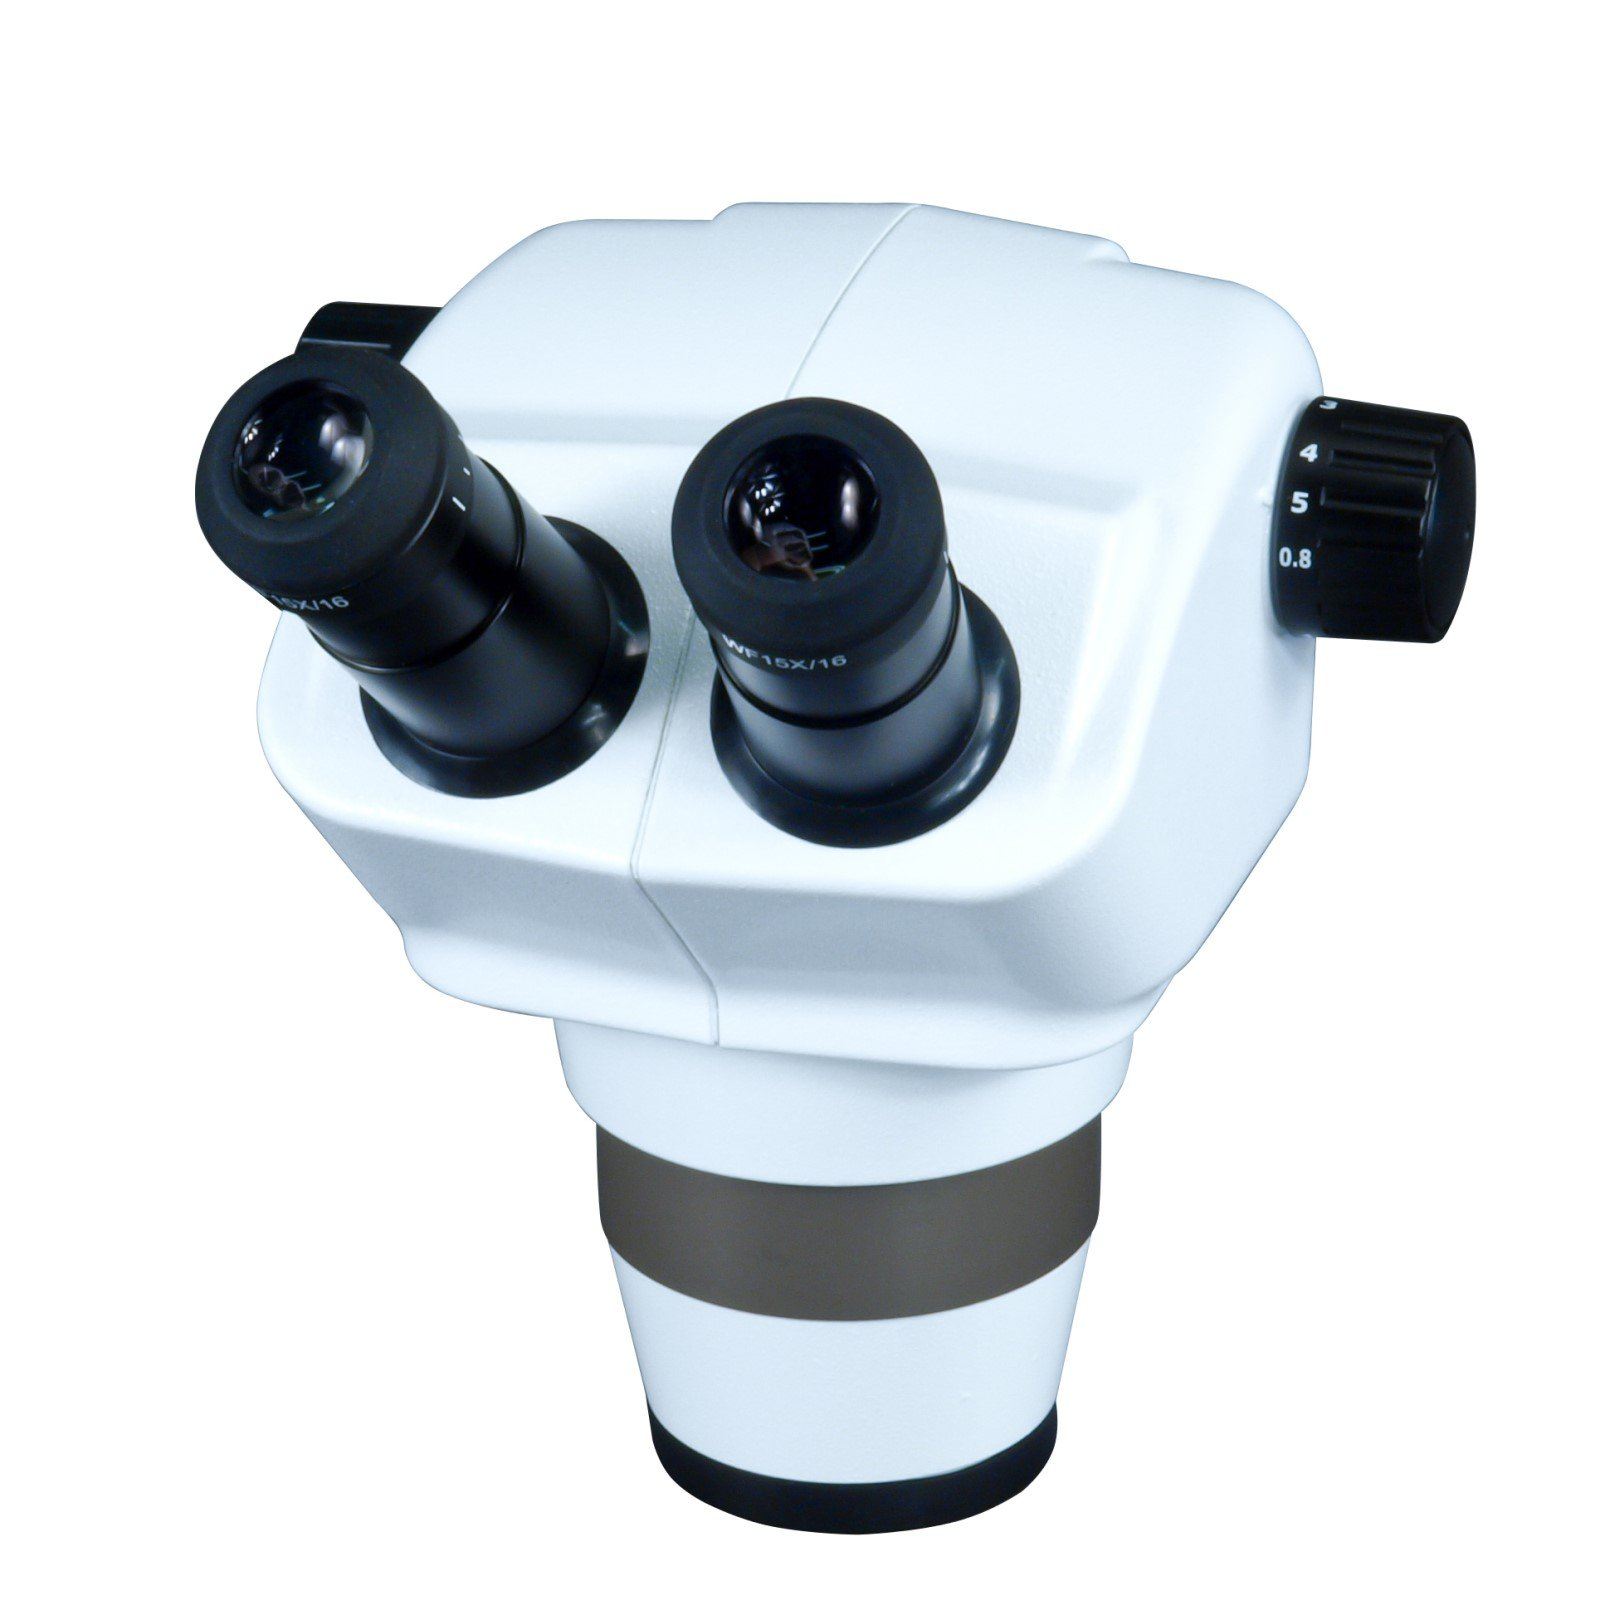 OMAX 12X-75X Top Quality Zoom Binocular Stereo Microscope Body with 76mm Mount Size by OMAX